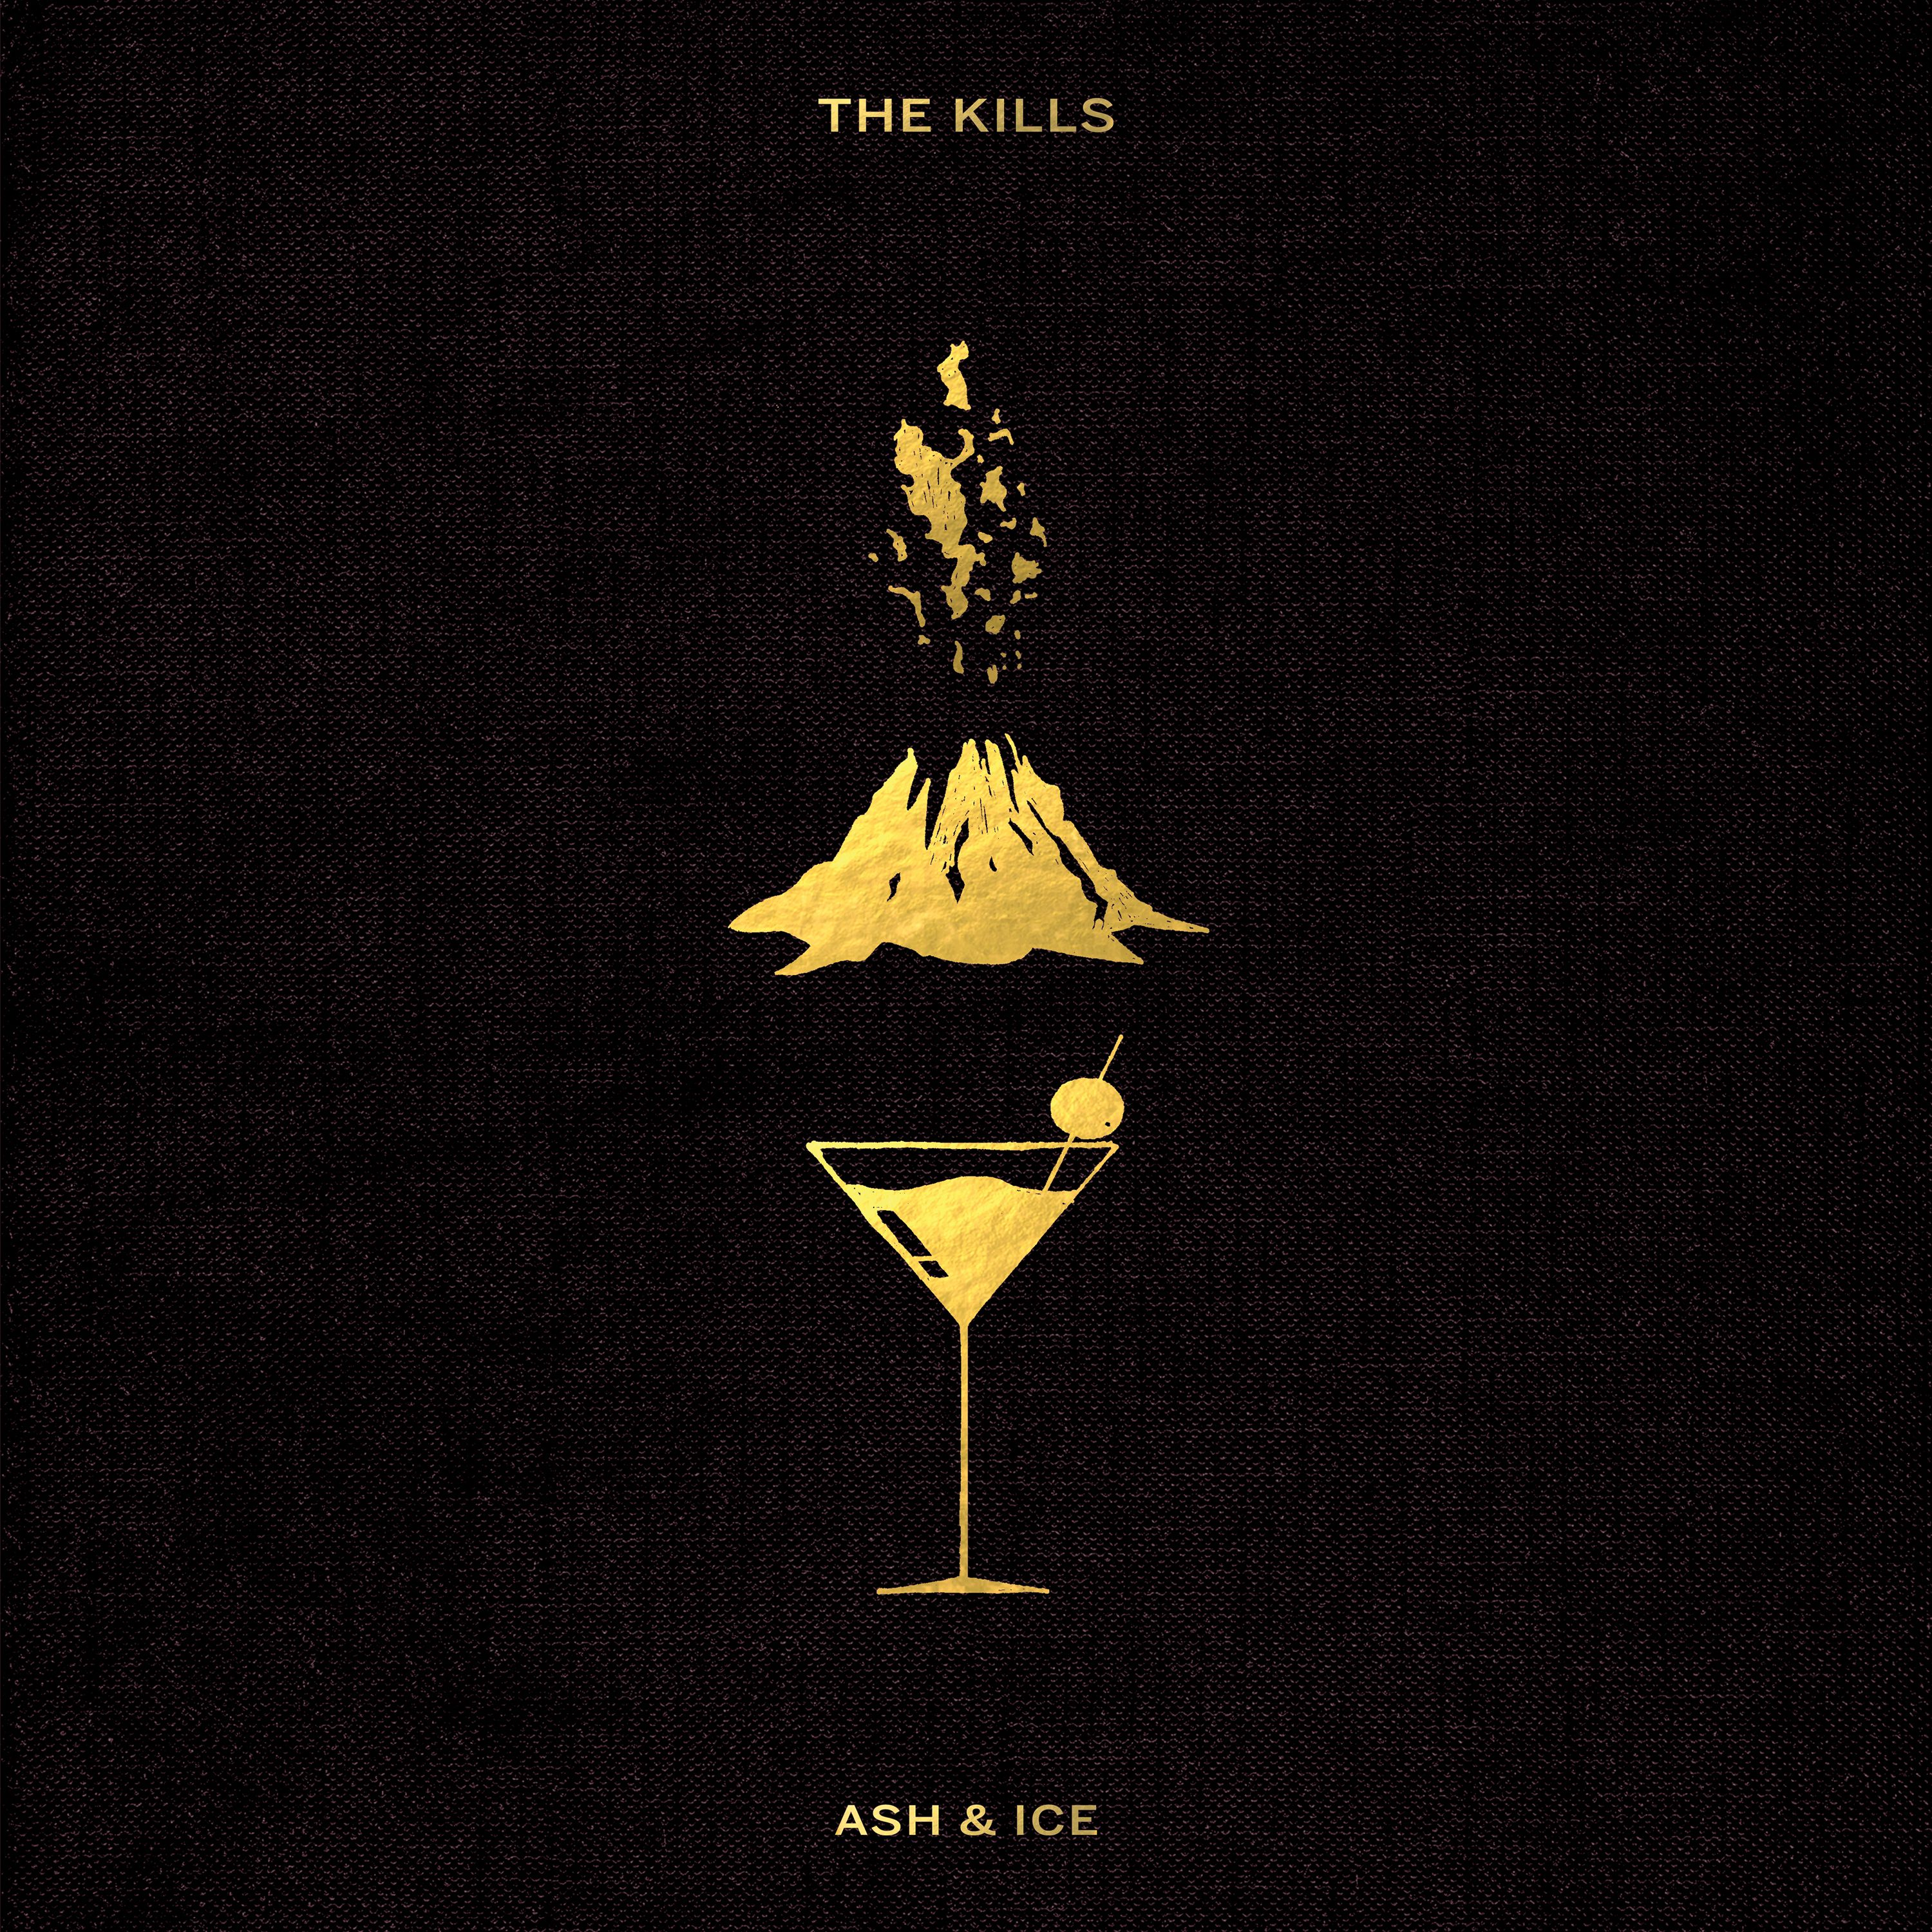 The Kills - Ash & Ice album cover